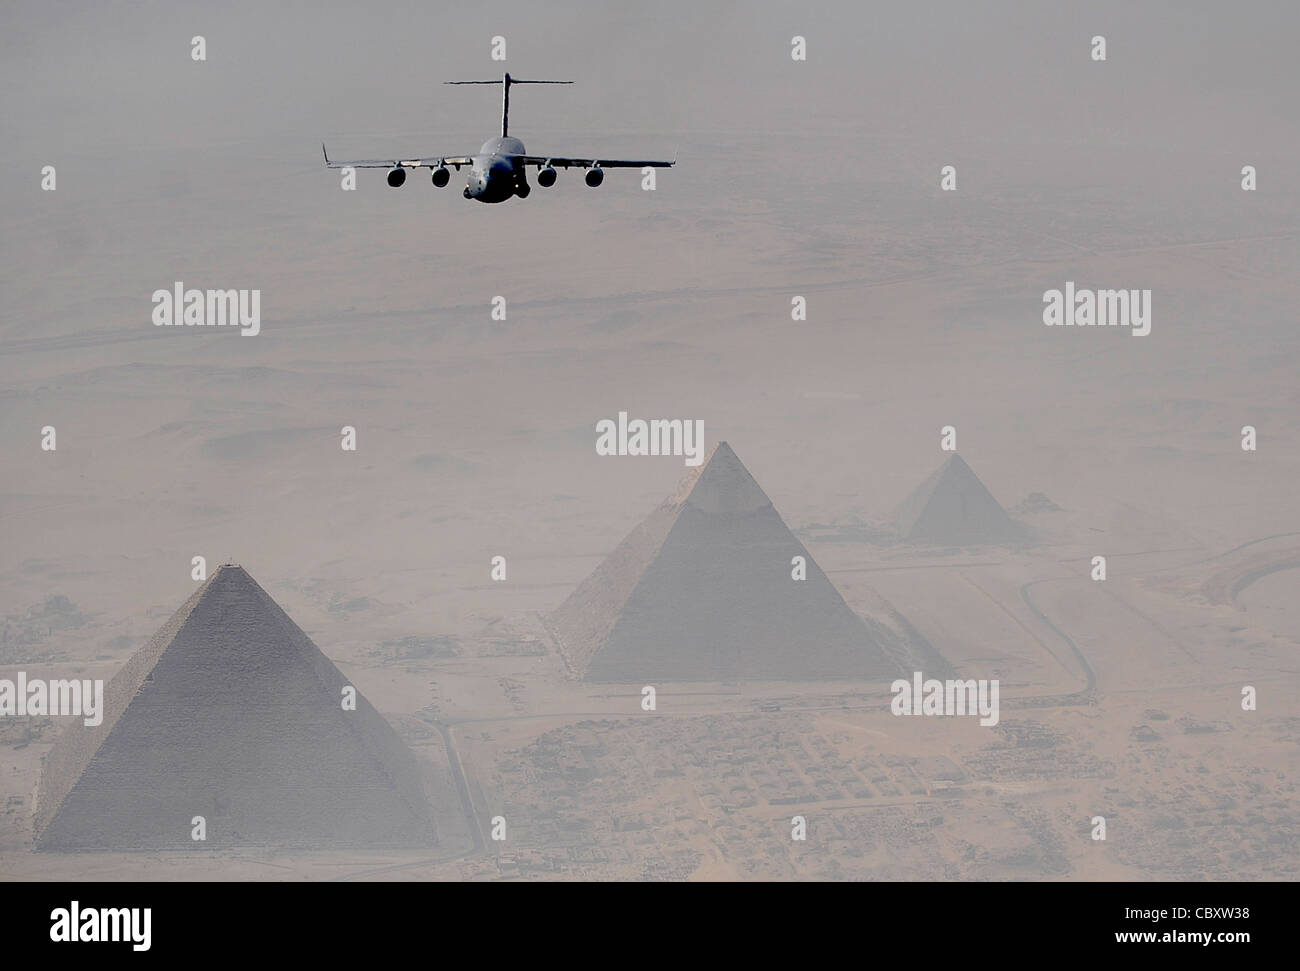 A C-17 Globemaster III flies over Cairo with the Pyramids of Giza in the distance Oct. 15, 2009 during Exercise - Stock Image